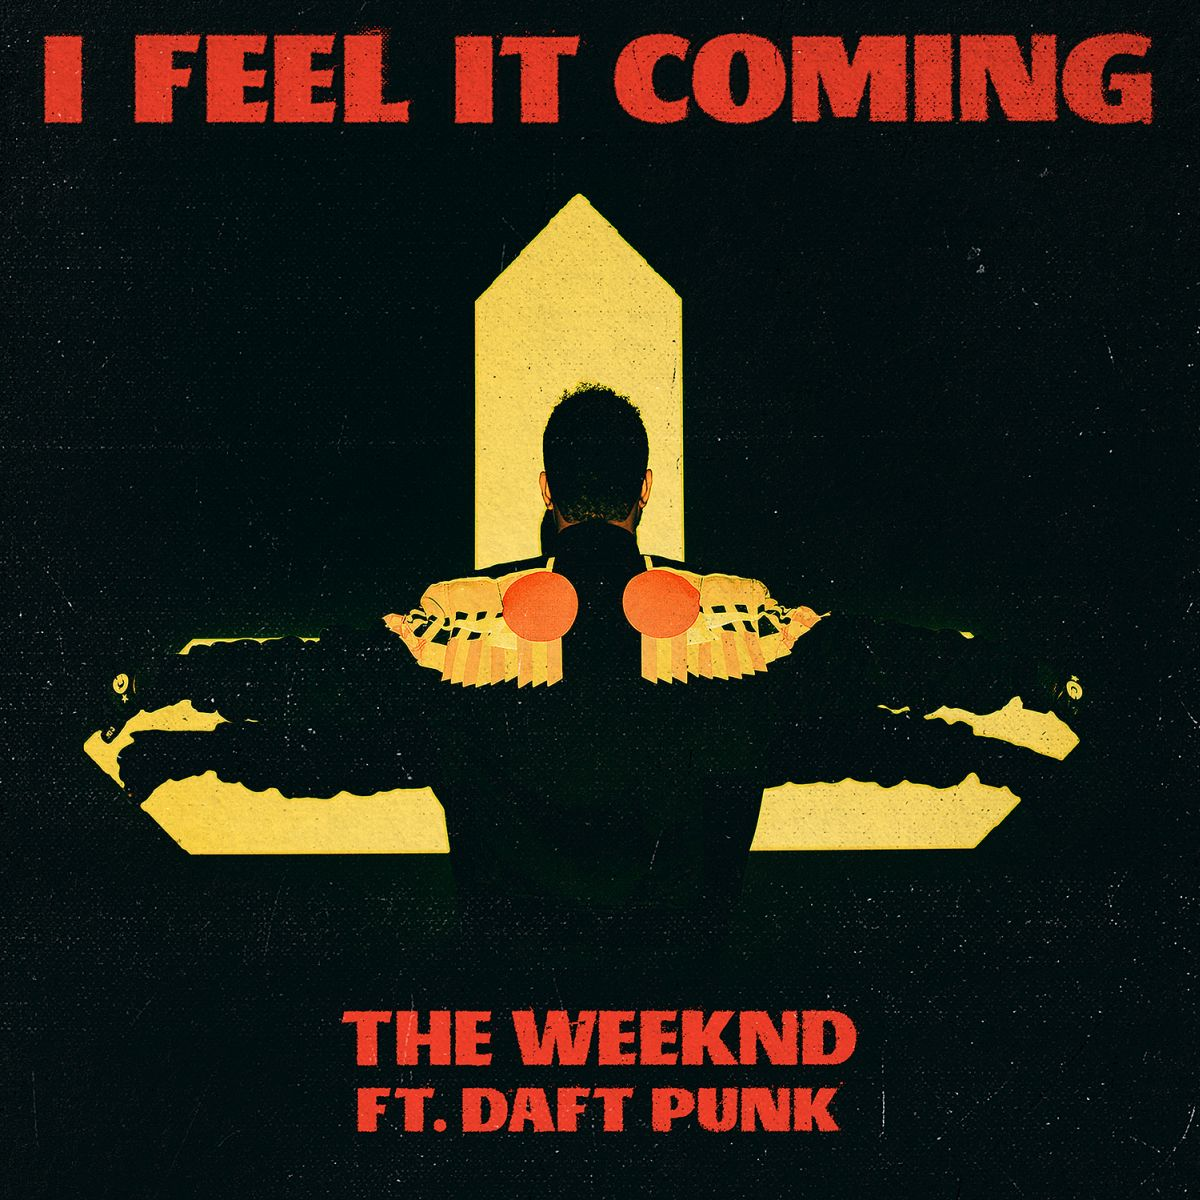 Cover: THE WEEKND FEAT. DAFT PUNK, I FEEL IT COMING